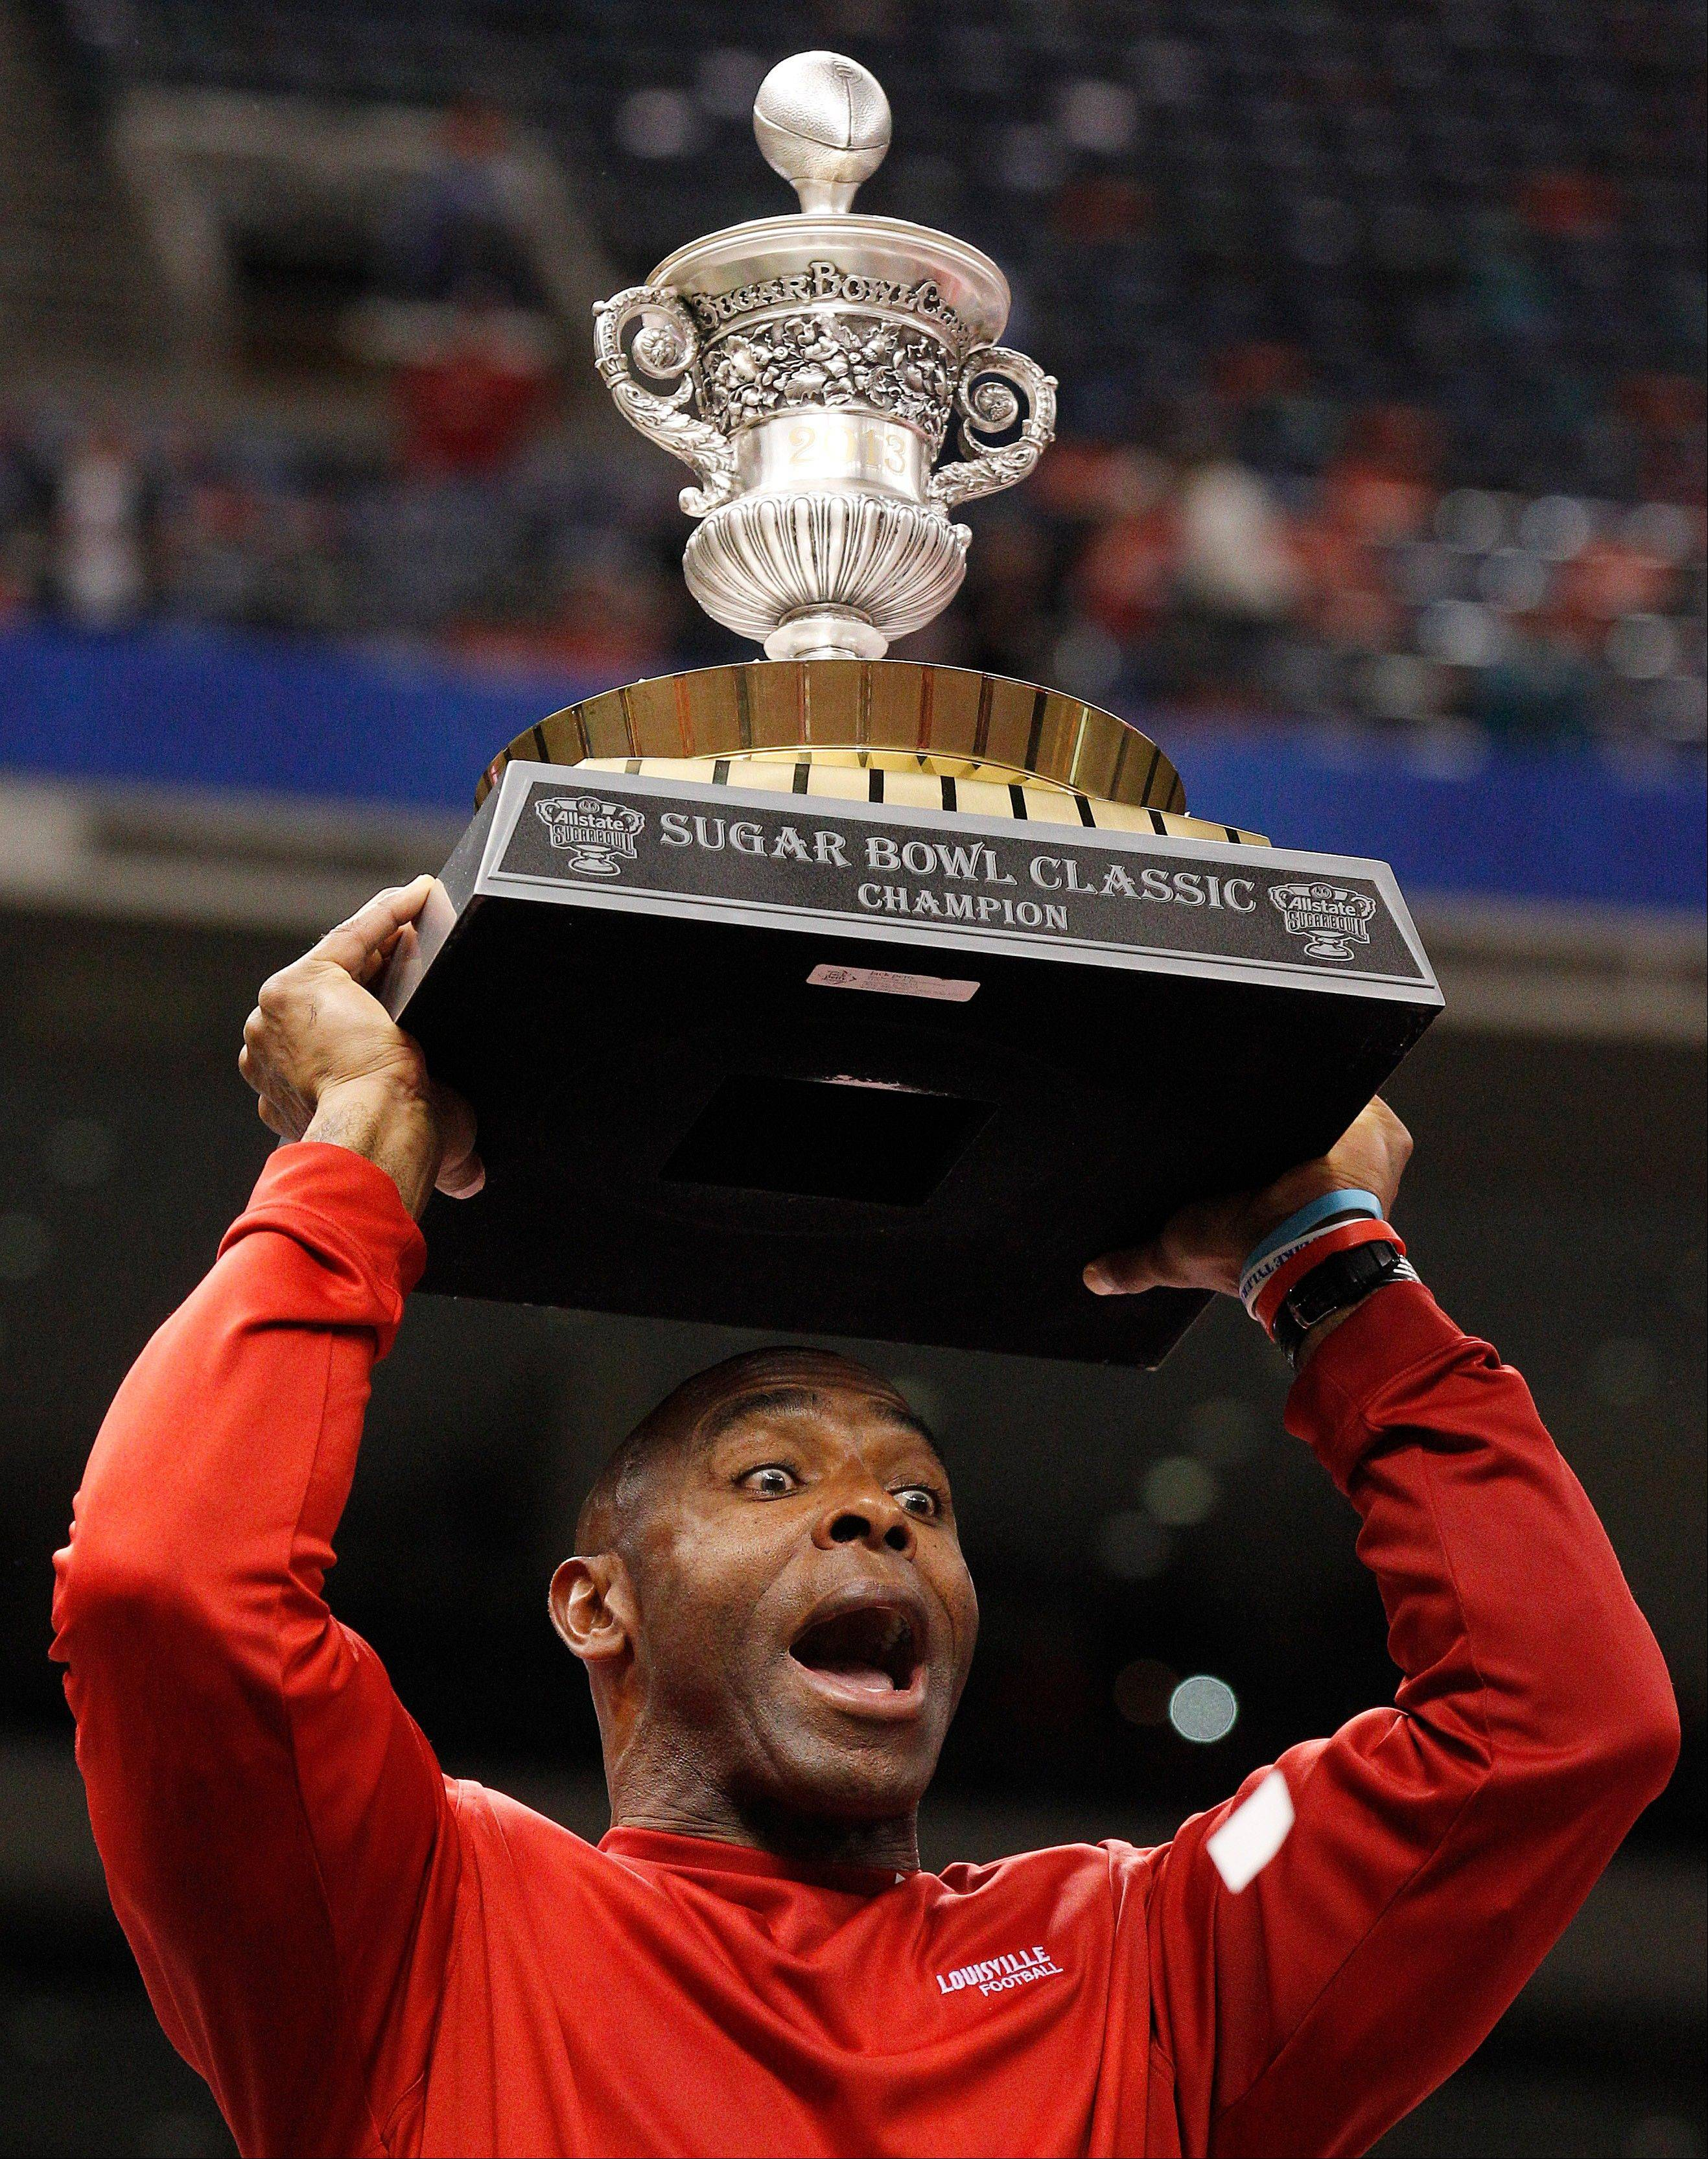 Louisville head coach Charlie Strong of the Big East celebrates following a 33-23 win over No. 3 Florida of the SEC in the Sugar Bowl Wednesday. The SEC is 3-3 in bowl games so far this season.